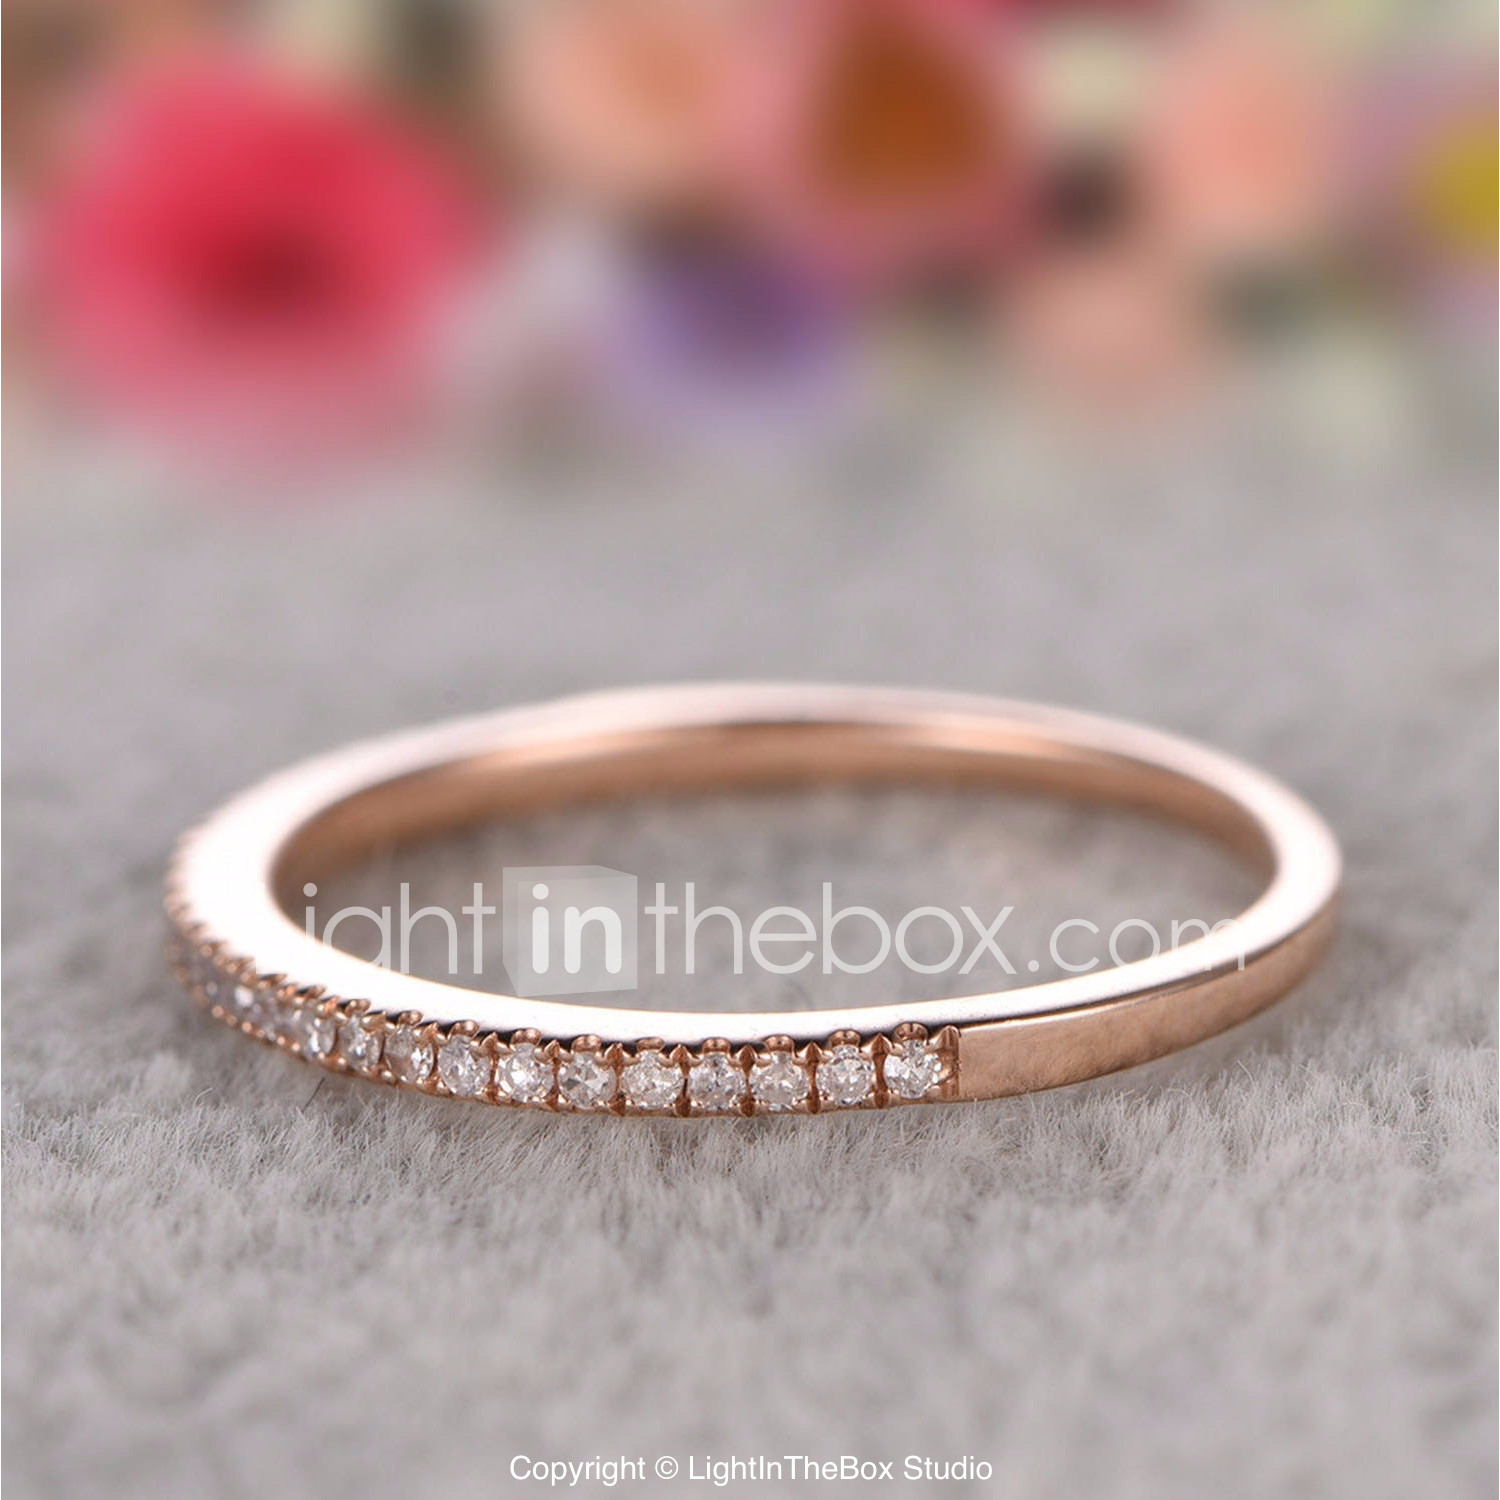 635a8f61ce Couple's Cubic Zirconia Classic Stylish Couple Rings Copper Rhinestone  Creative Ladies Stylish Simple Classic Ring Jewelry Gold / Silver / Rose  Gold For ...